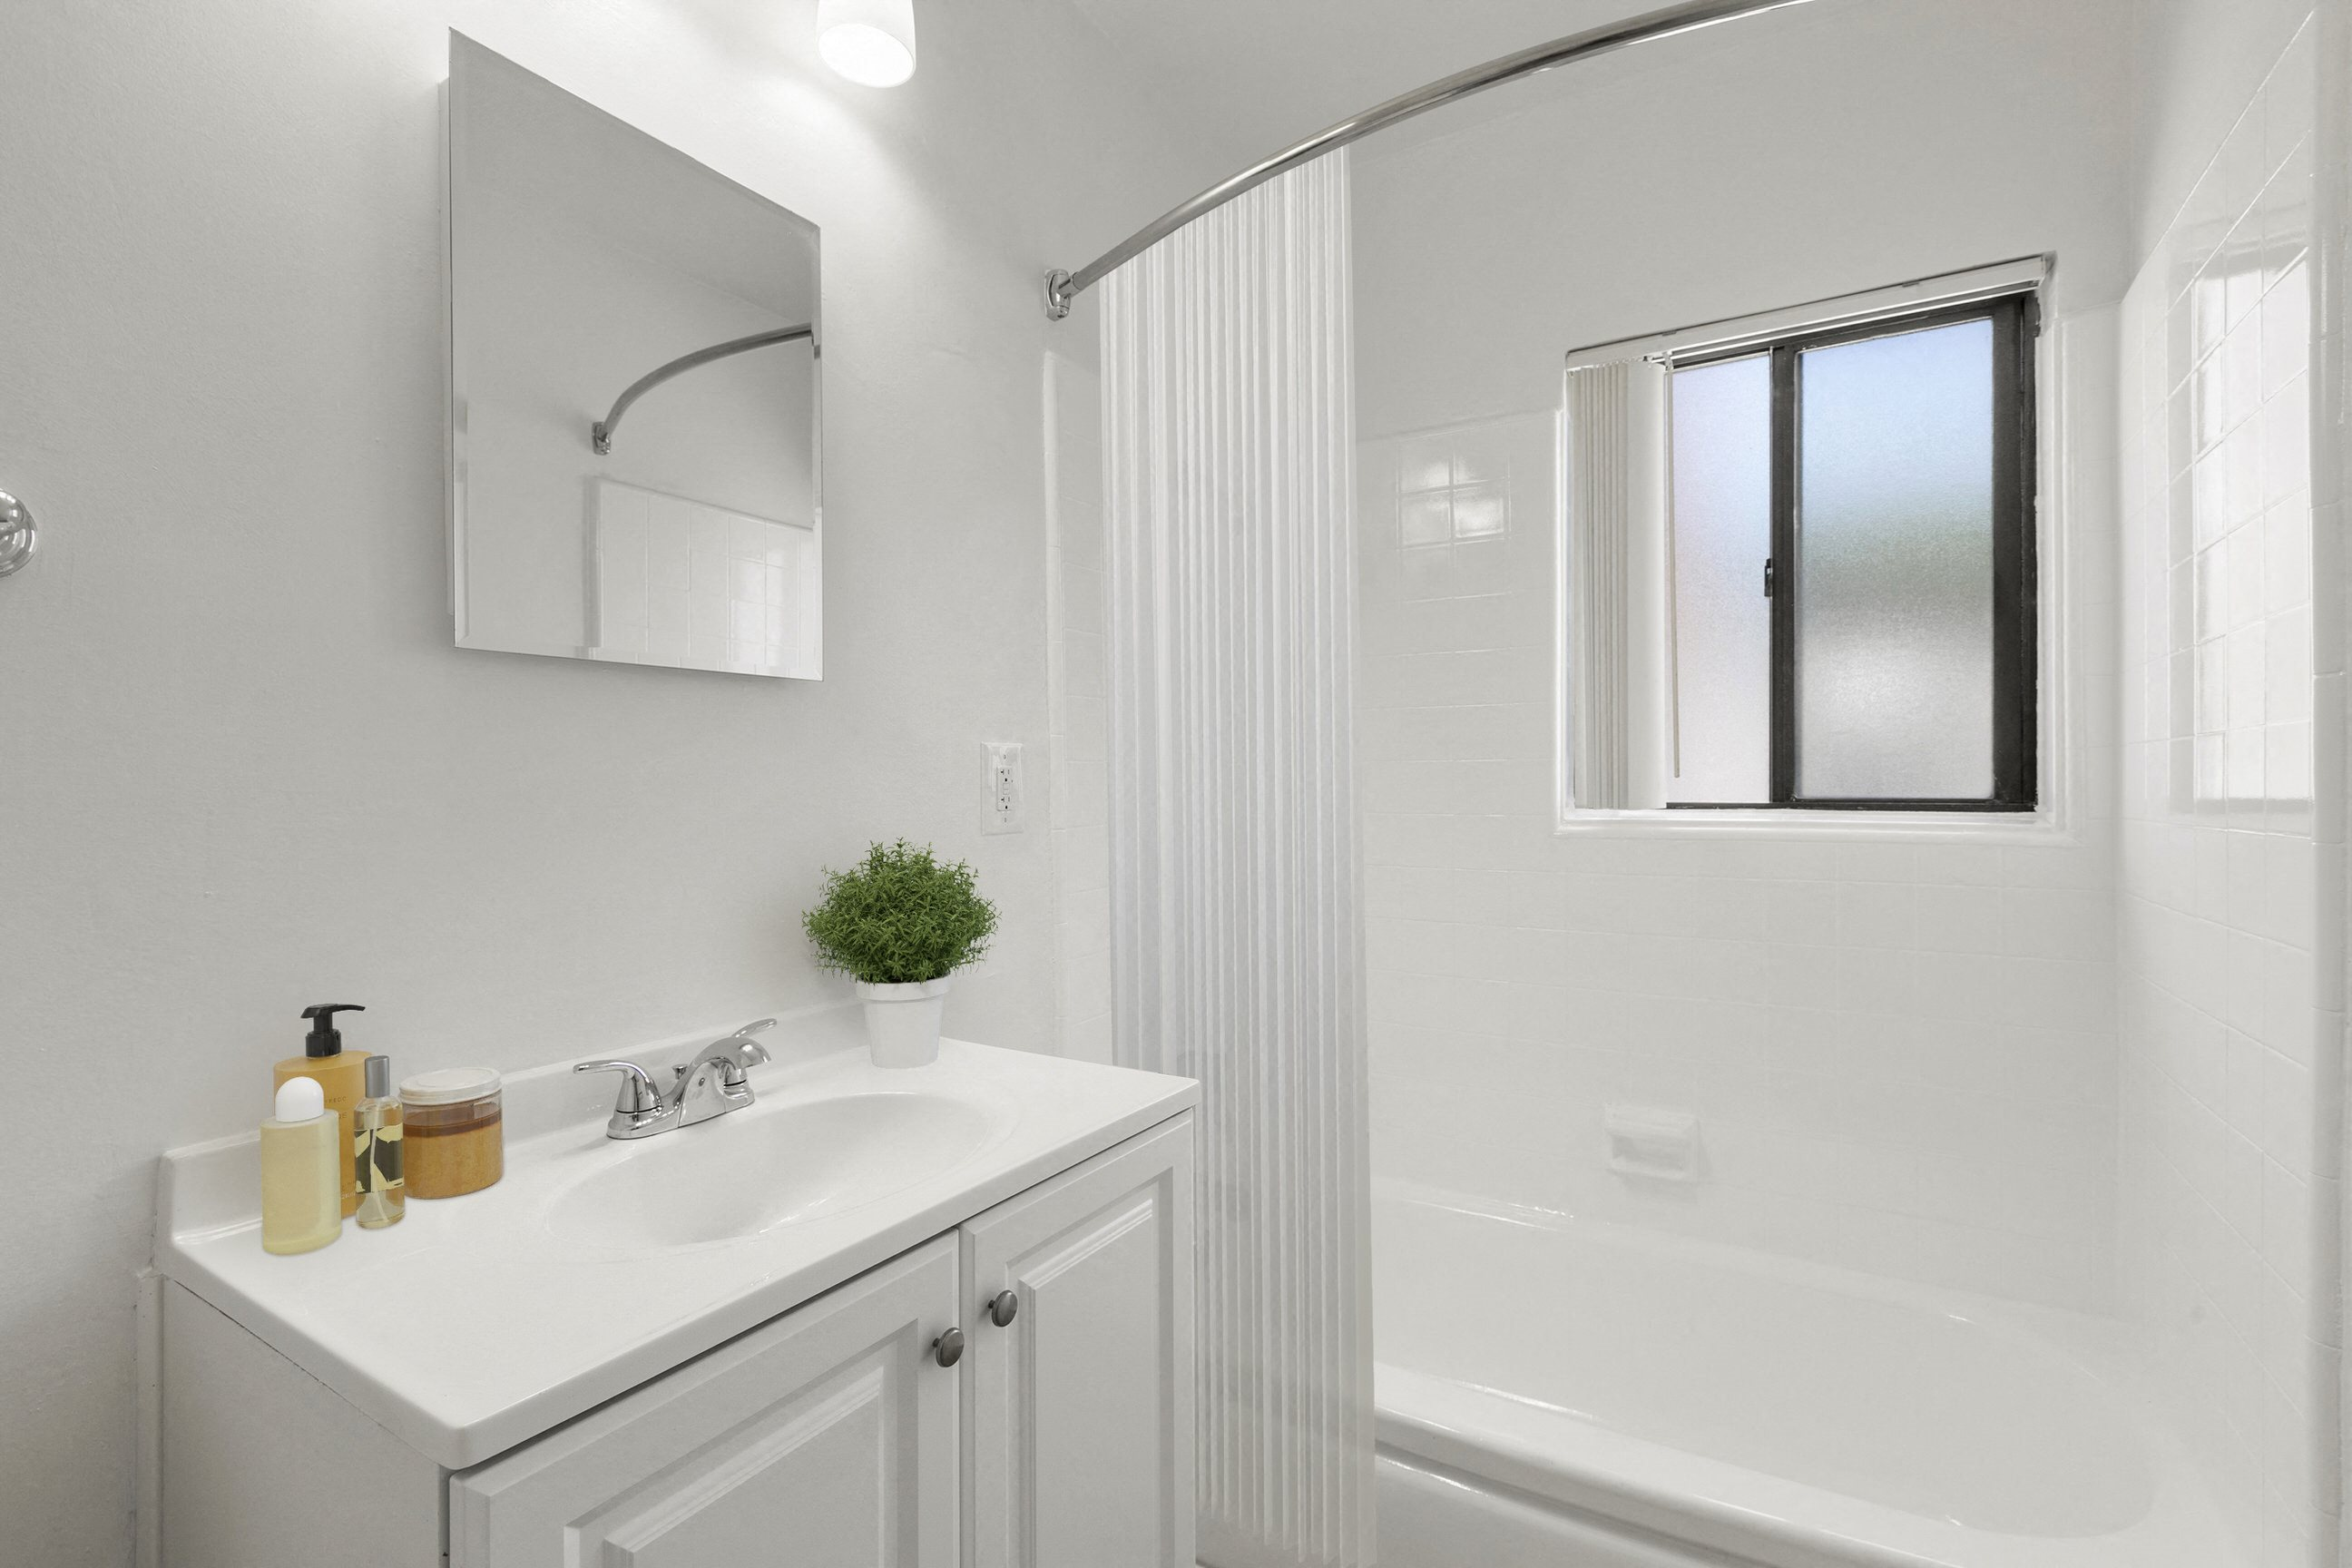 Bathroom at Pacific Rose Apartments, 10705 Rose Ave, Los Angeles, CA 90034